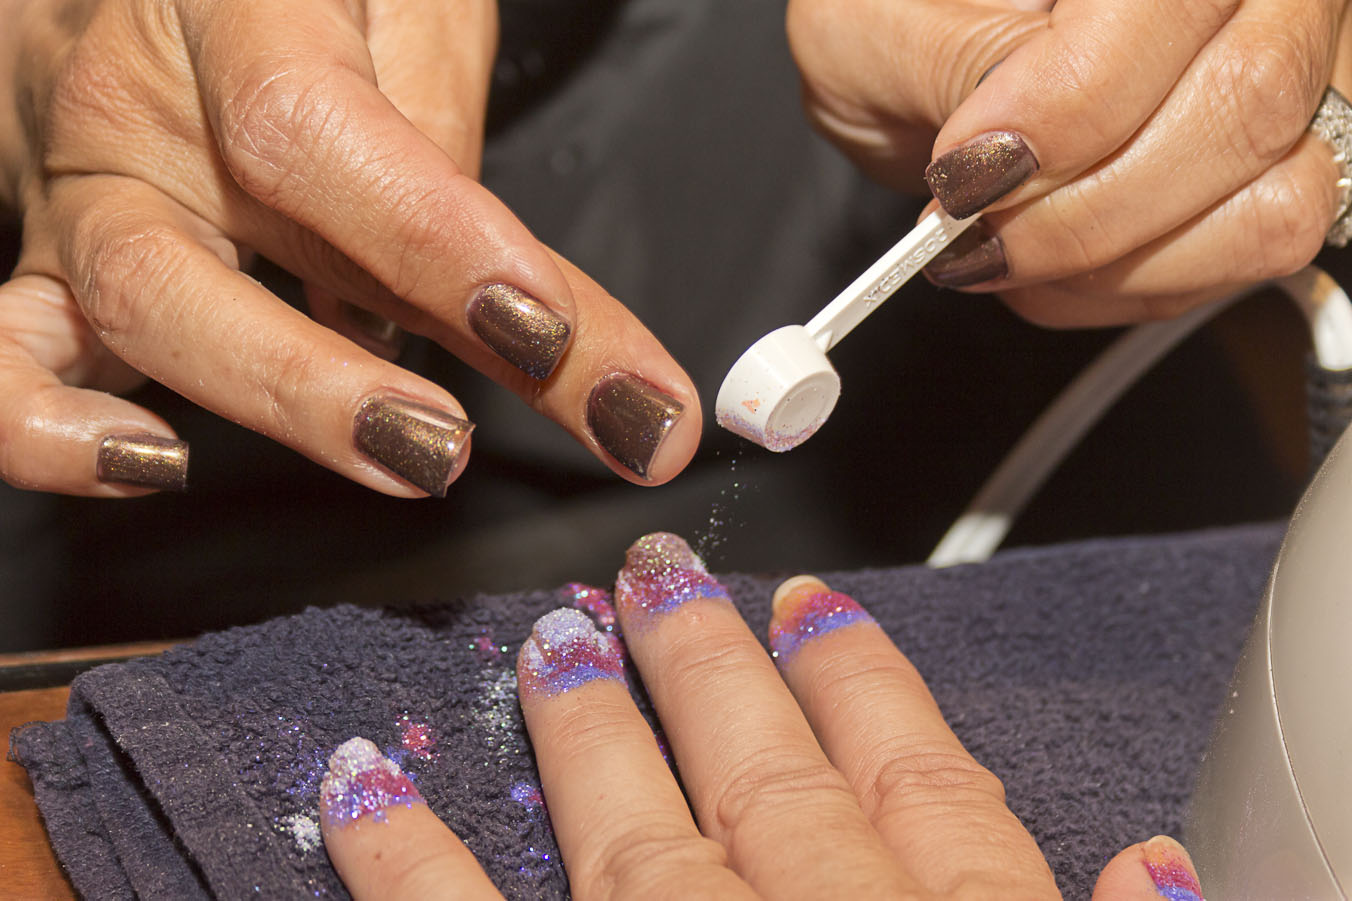 Rockstar Nails Bring A Party To The Fingertips Campus Times